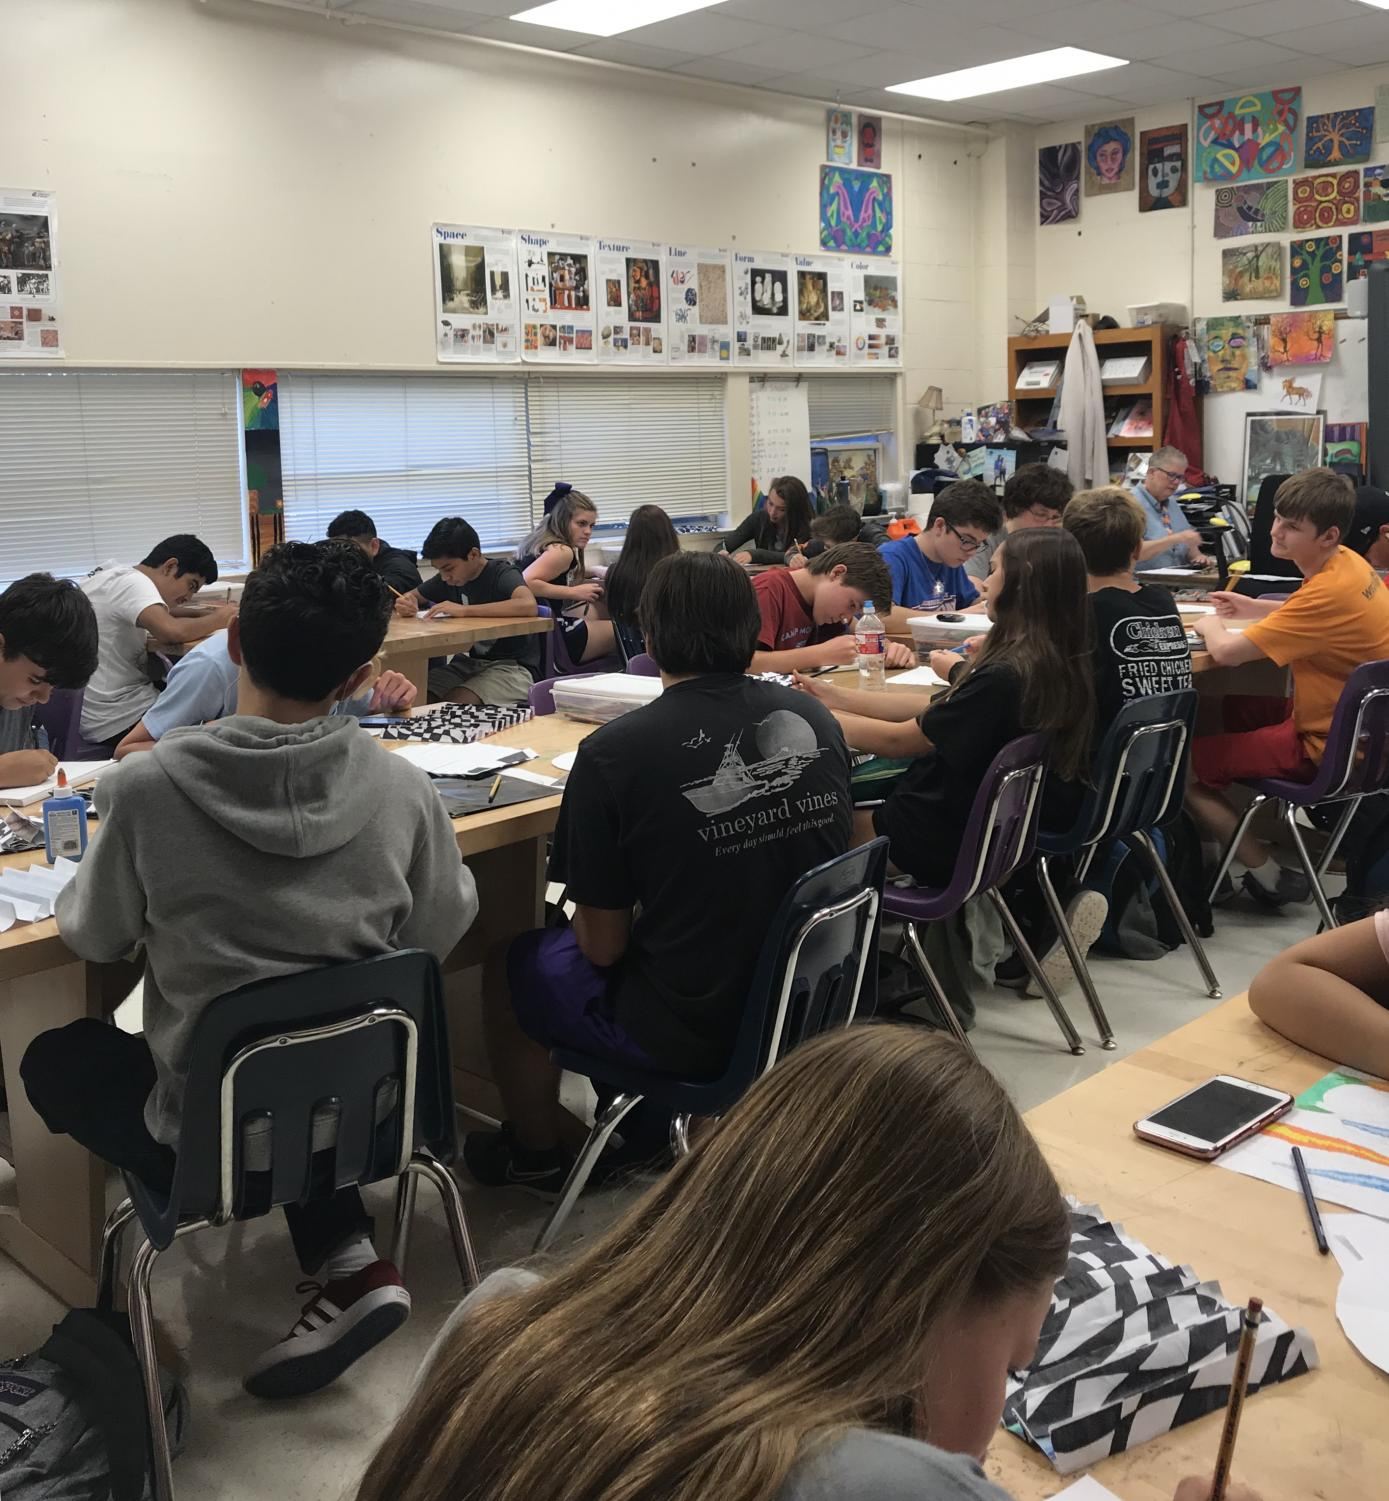 Mrs. Hudson's Honors Art 1 class overcrowded with 36 students.